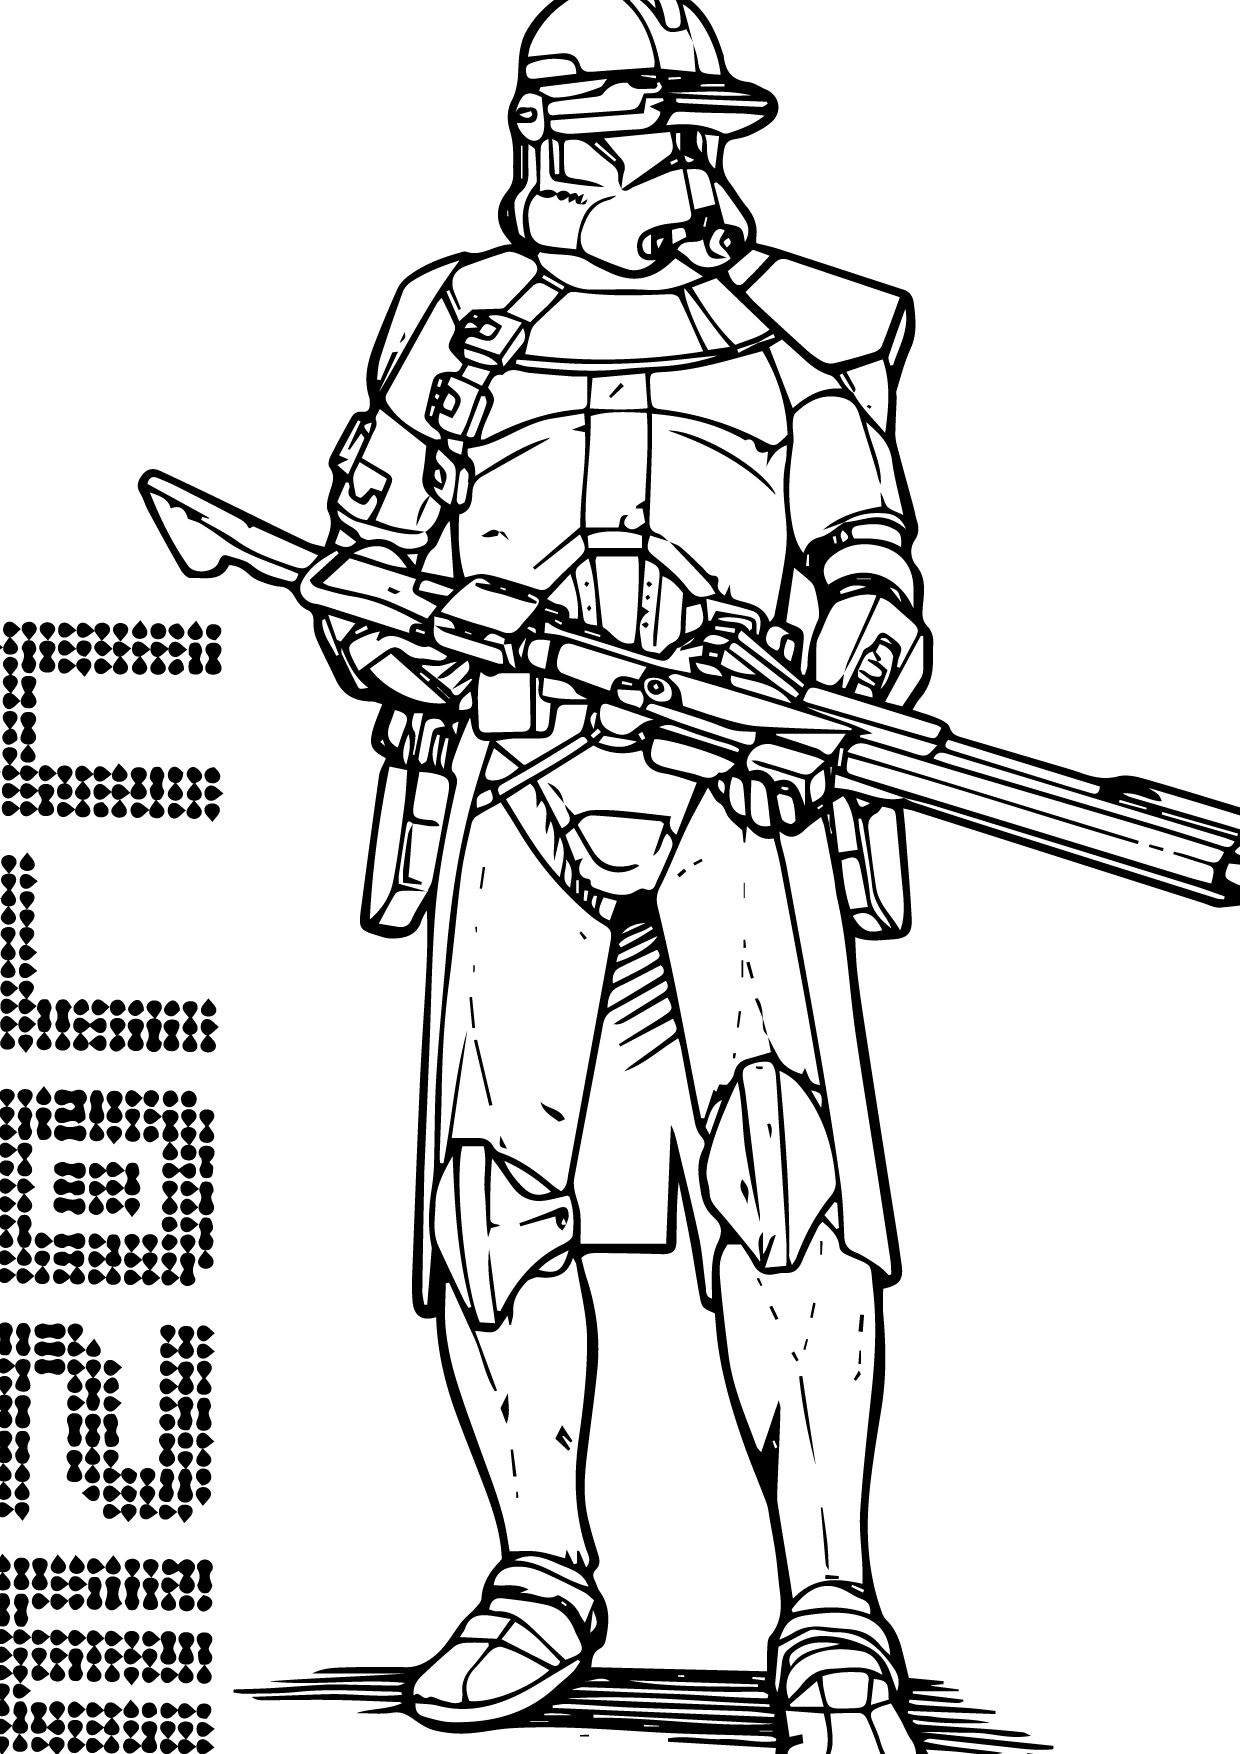 star wars print out coloring pages star wars coloring pages coloringrocks pages star coloring out wars print